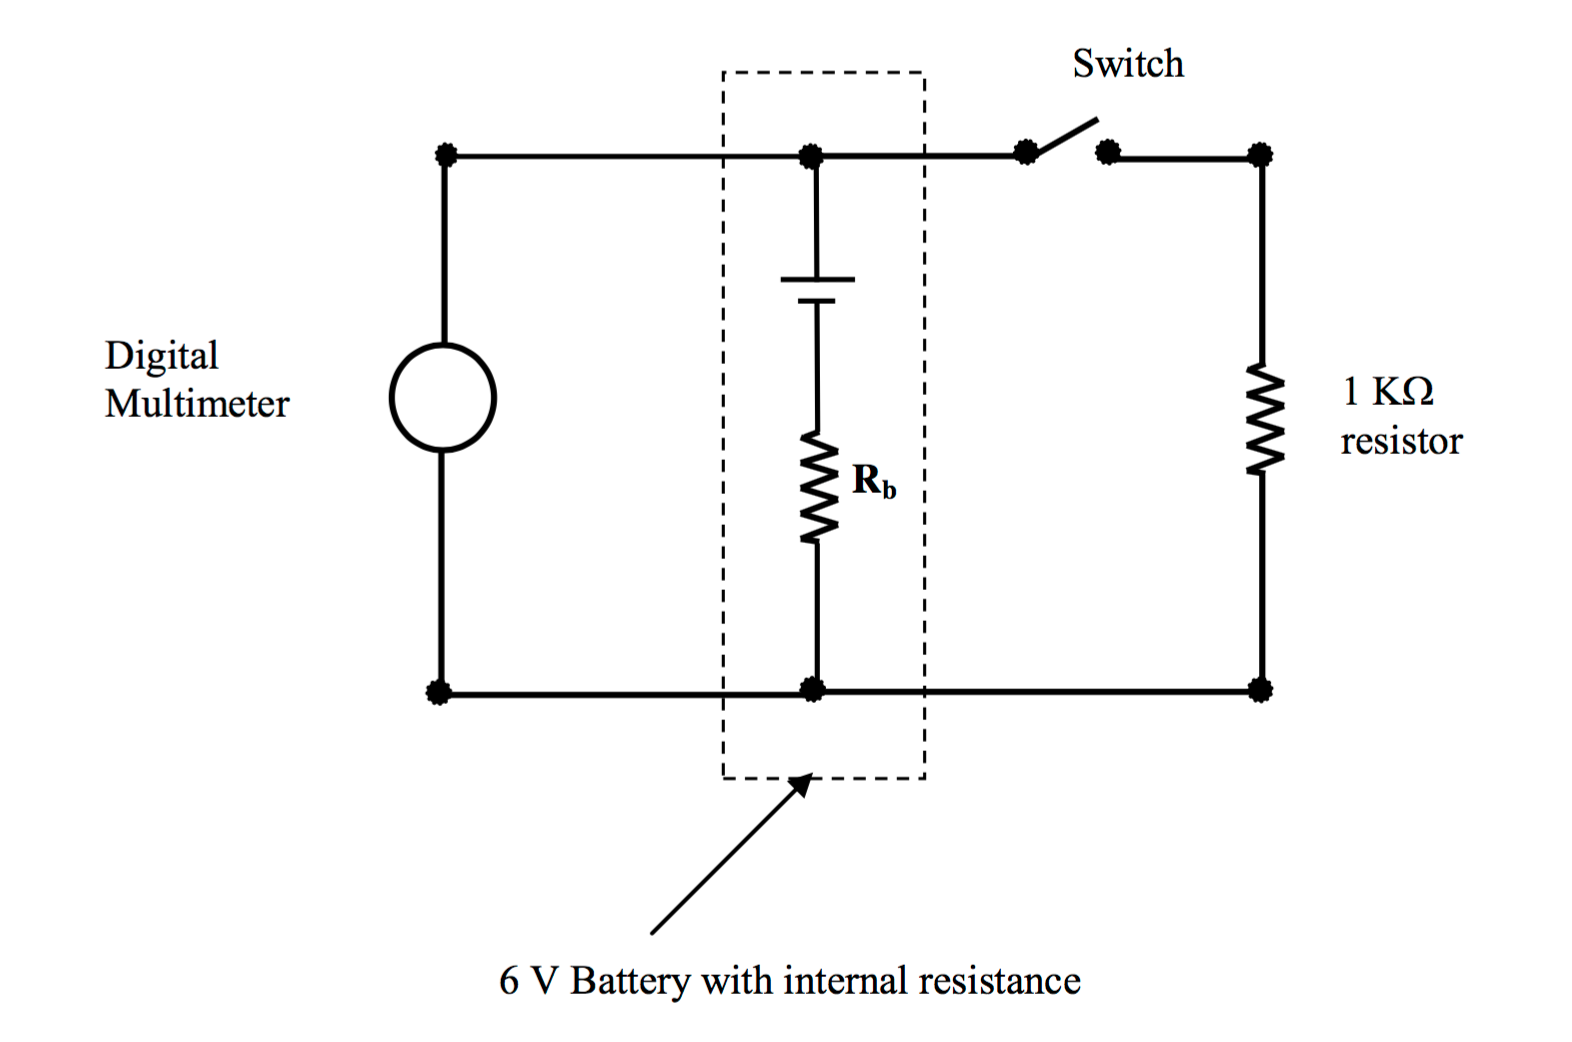 Solved In The Circuit Above 6 Volt Battery Is Shown Resistors Parallel Switches Series Switch Digital Multimeter Resistor Rb V With Internal Resistance